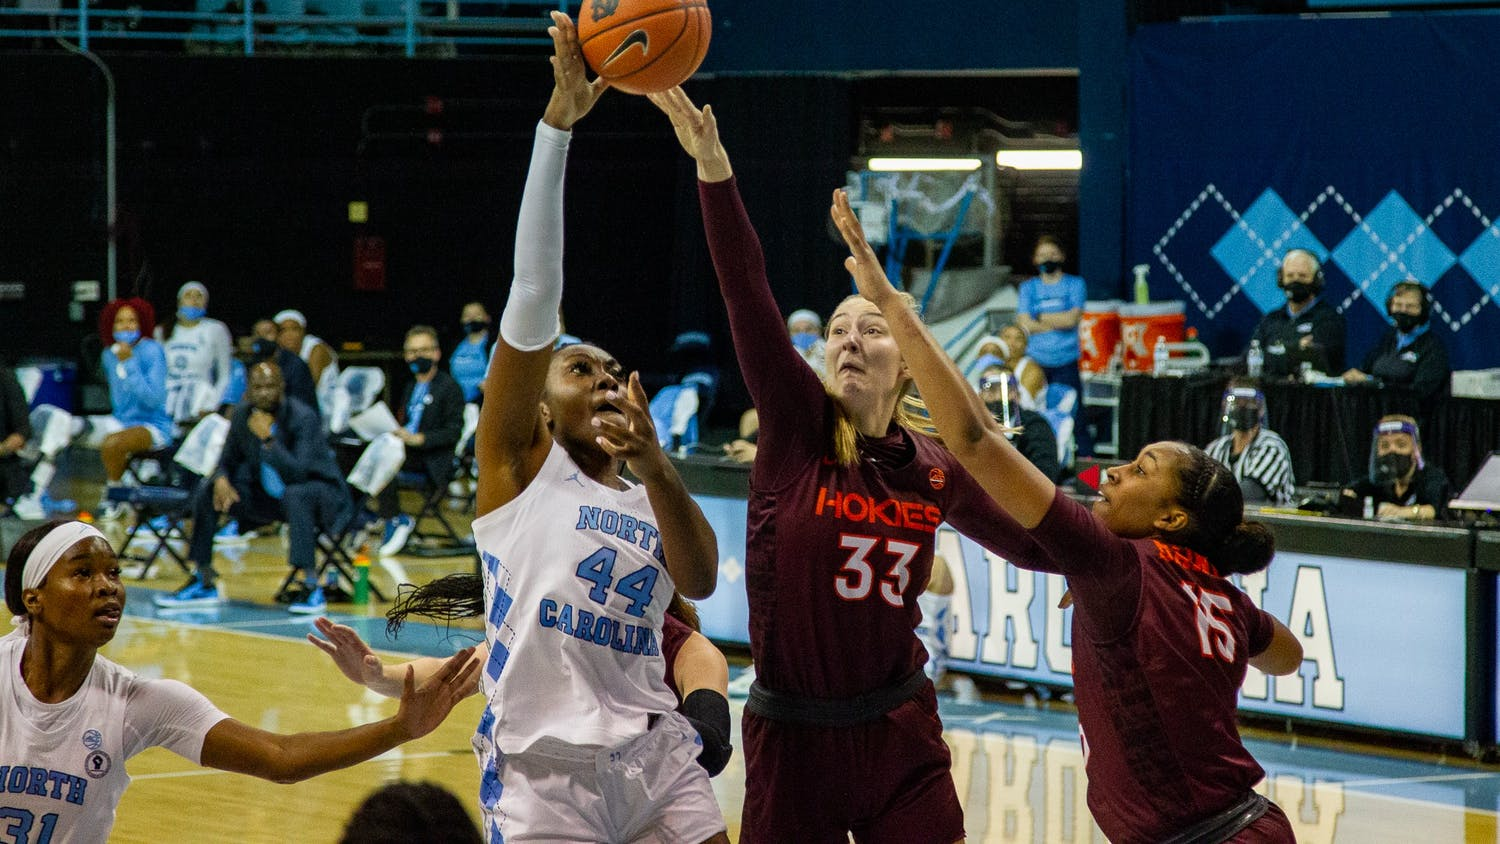 UNC senior center Janelle Bailey (44) attempts a layup in Carmichael Arena on Jan. 14, 2021 in Chapel Hill, N.C. The Tar Heels lost to the Hokies 66-54.